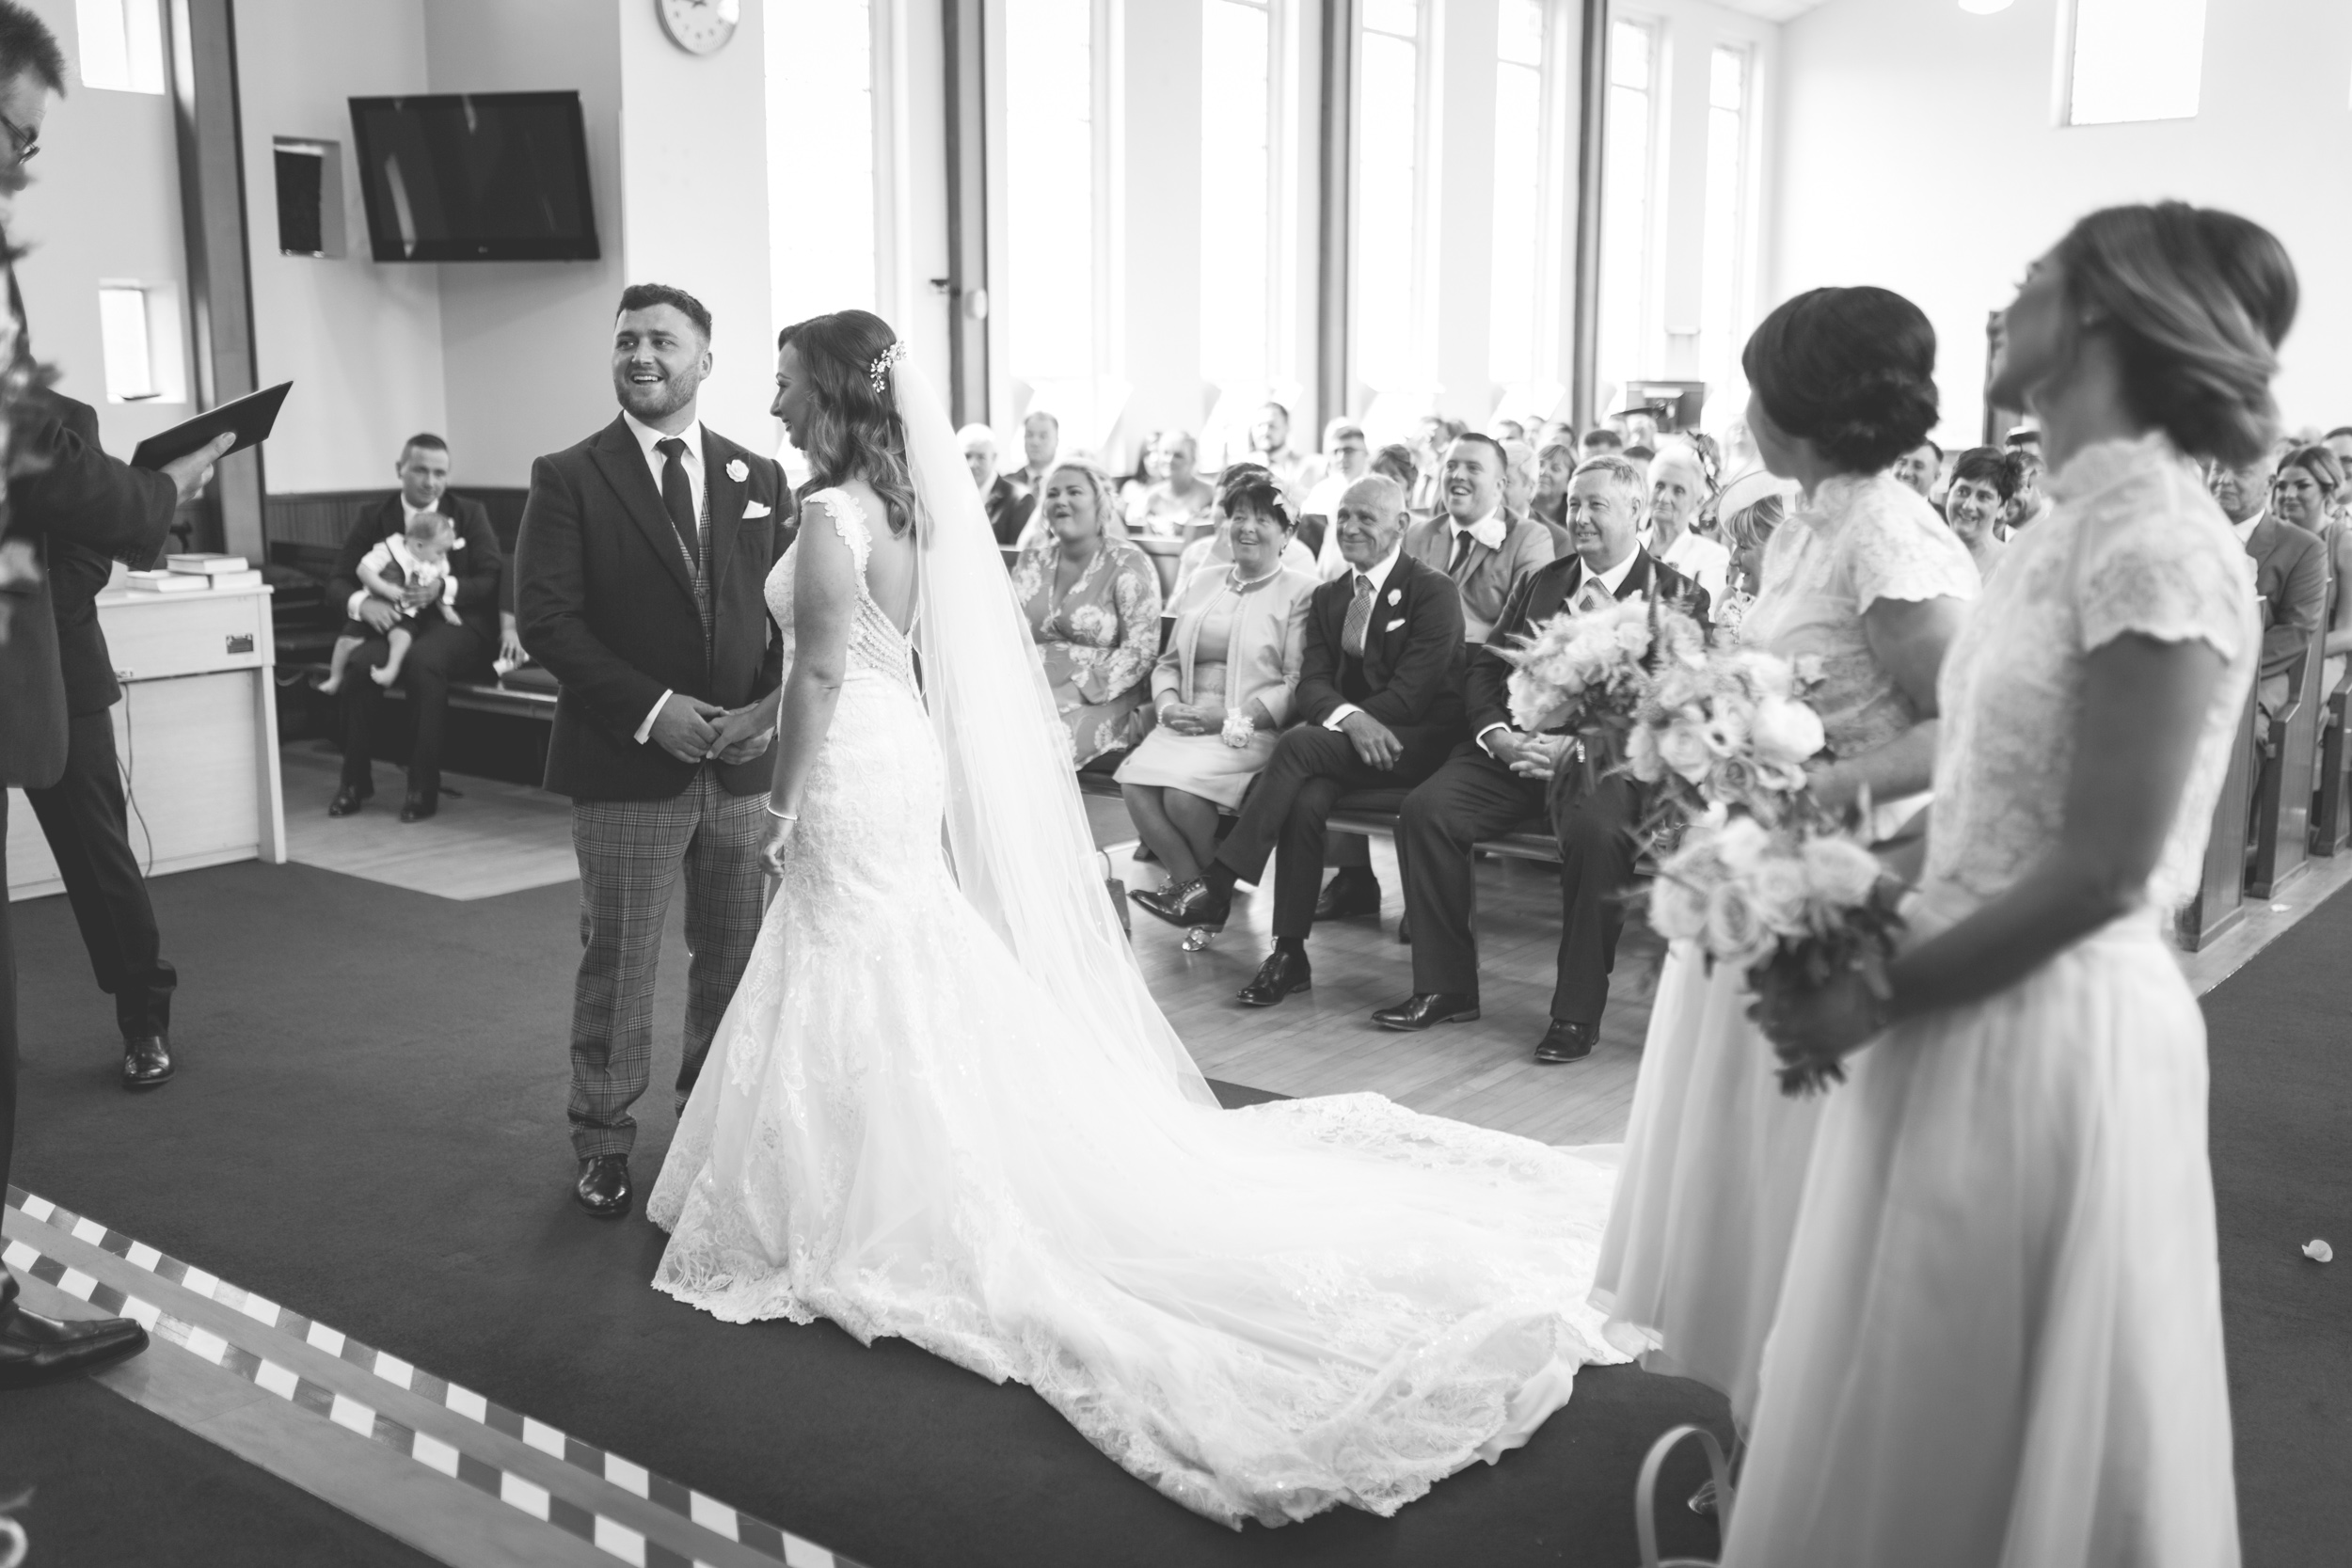 Brian McEwan | Northern Ireland Wedding Photographer | Rebecca & Michael | Ceremony-56.jpg